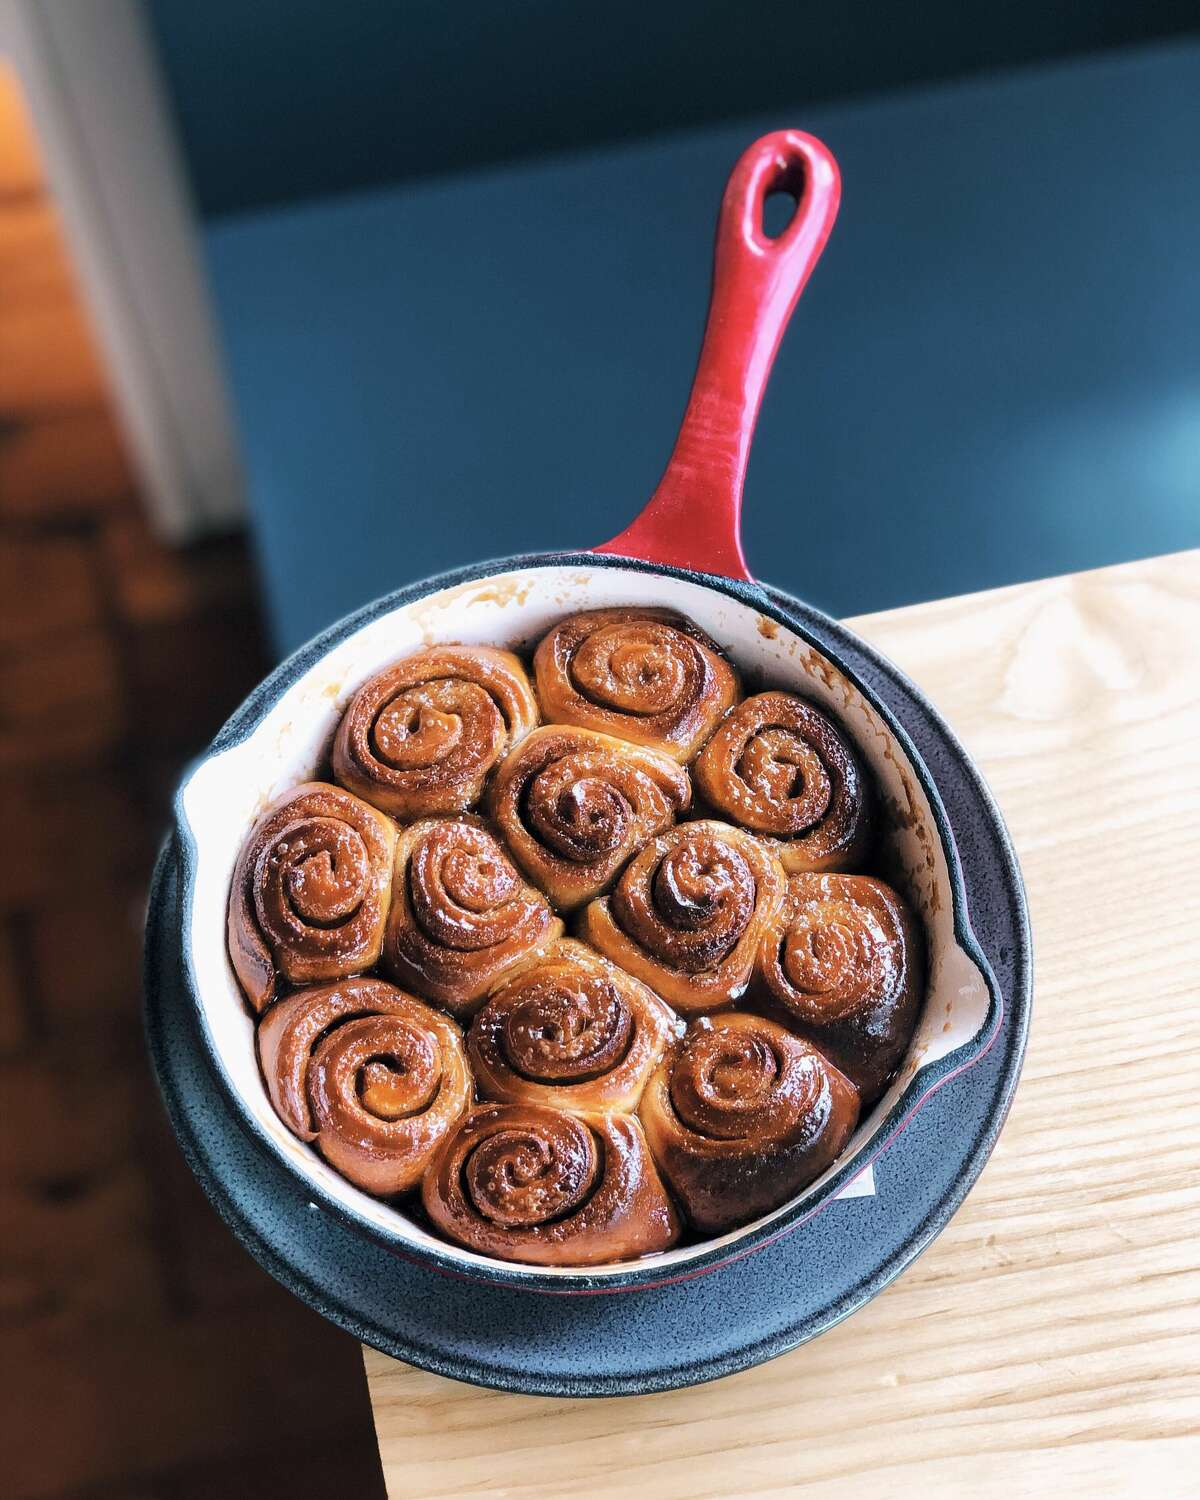 Sawyer-Ballard Seated in a renovated 1920s sawmill, Sawyer pulls out all means of photogenic cast iron skillets packed with cinnamon roll monkey bread smothered in cream cheese frosting and udon noodles speckled with scrambled eggs and scallions on Sundays from 10 a.m.-2 p.m..